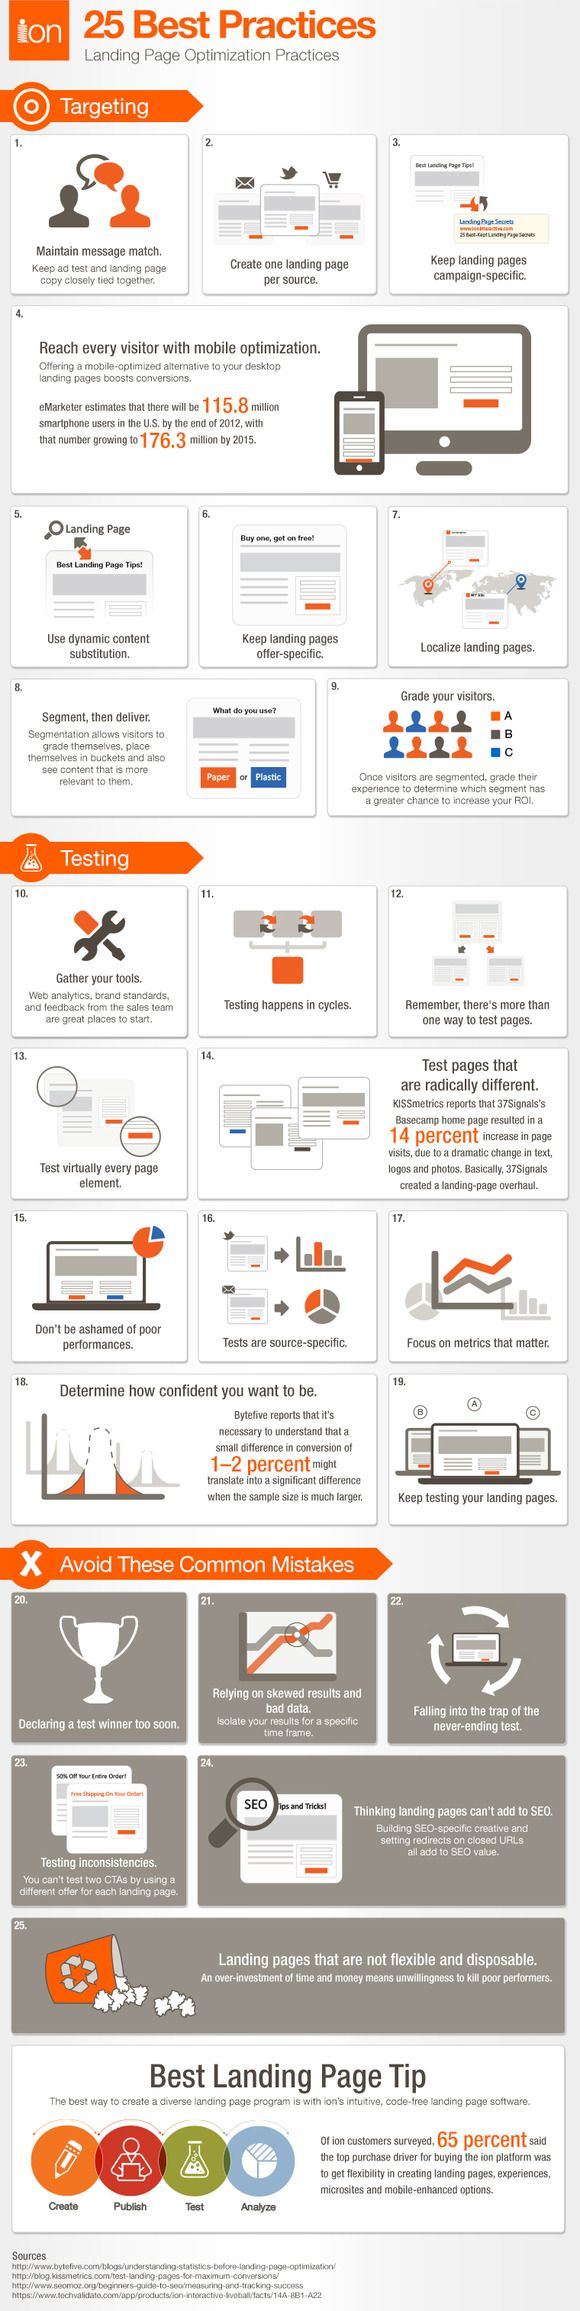 New Infographic: 25 Landing Page Best Practices - ion interactive blog - ion